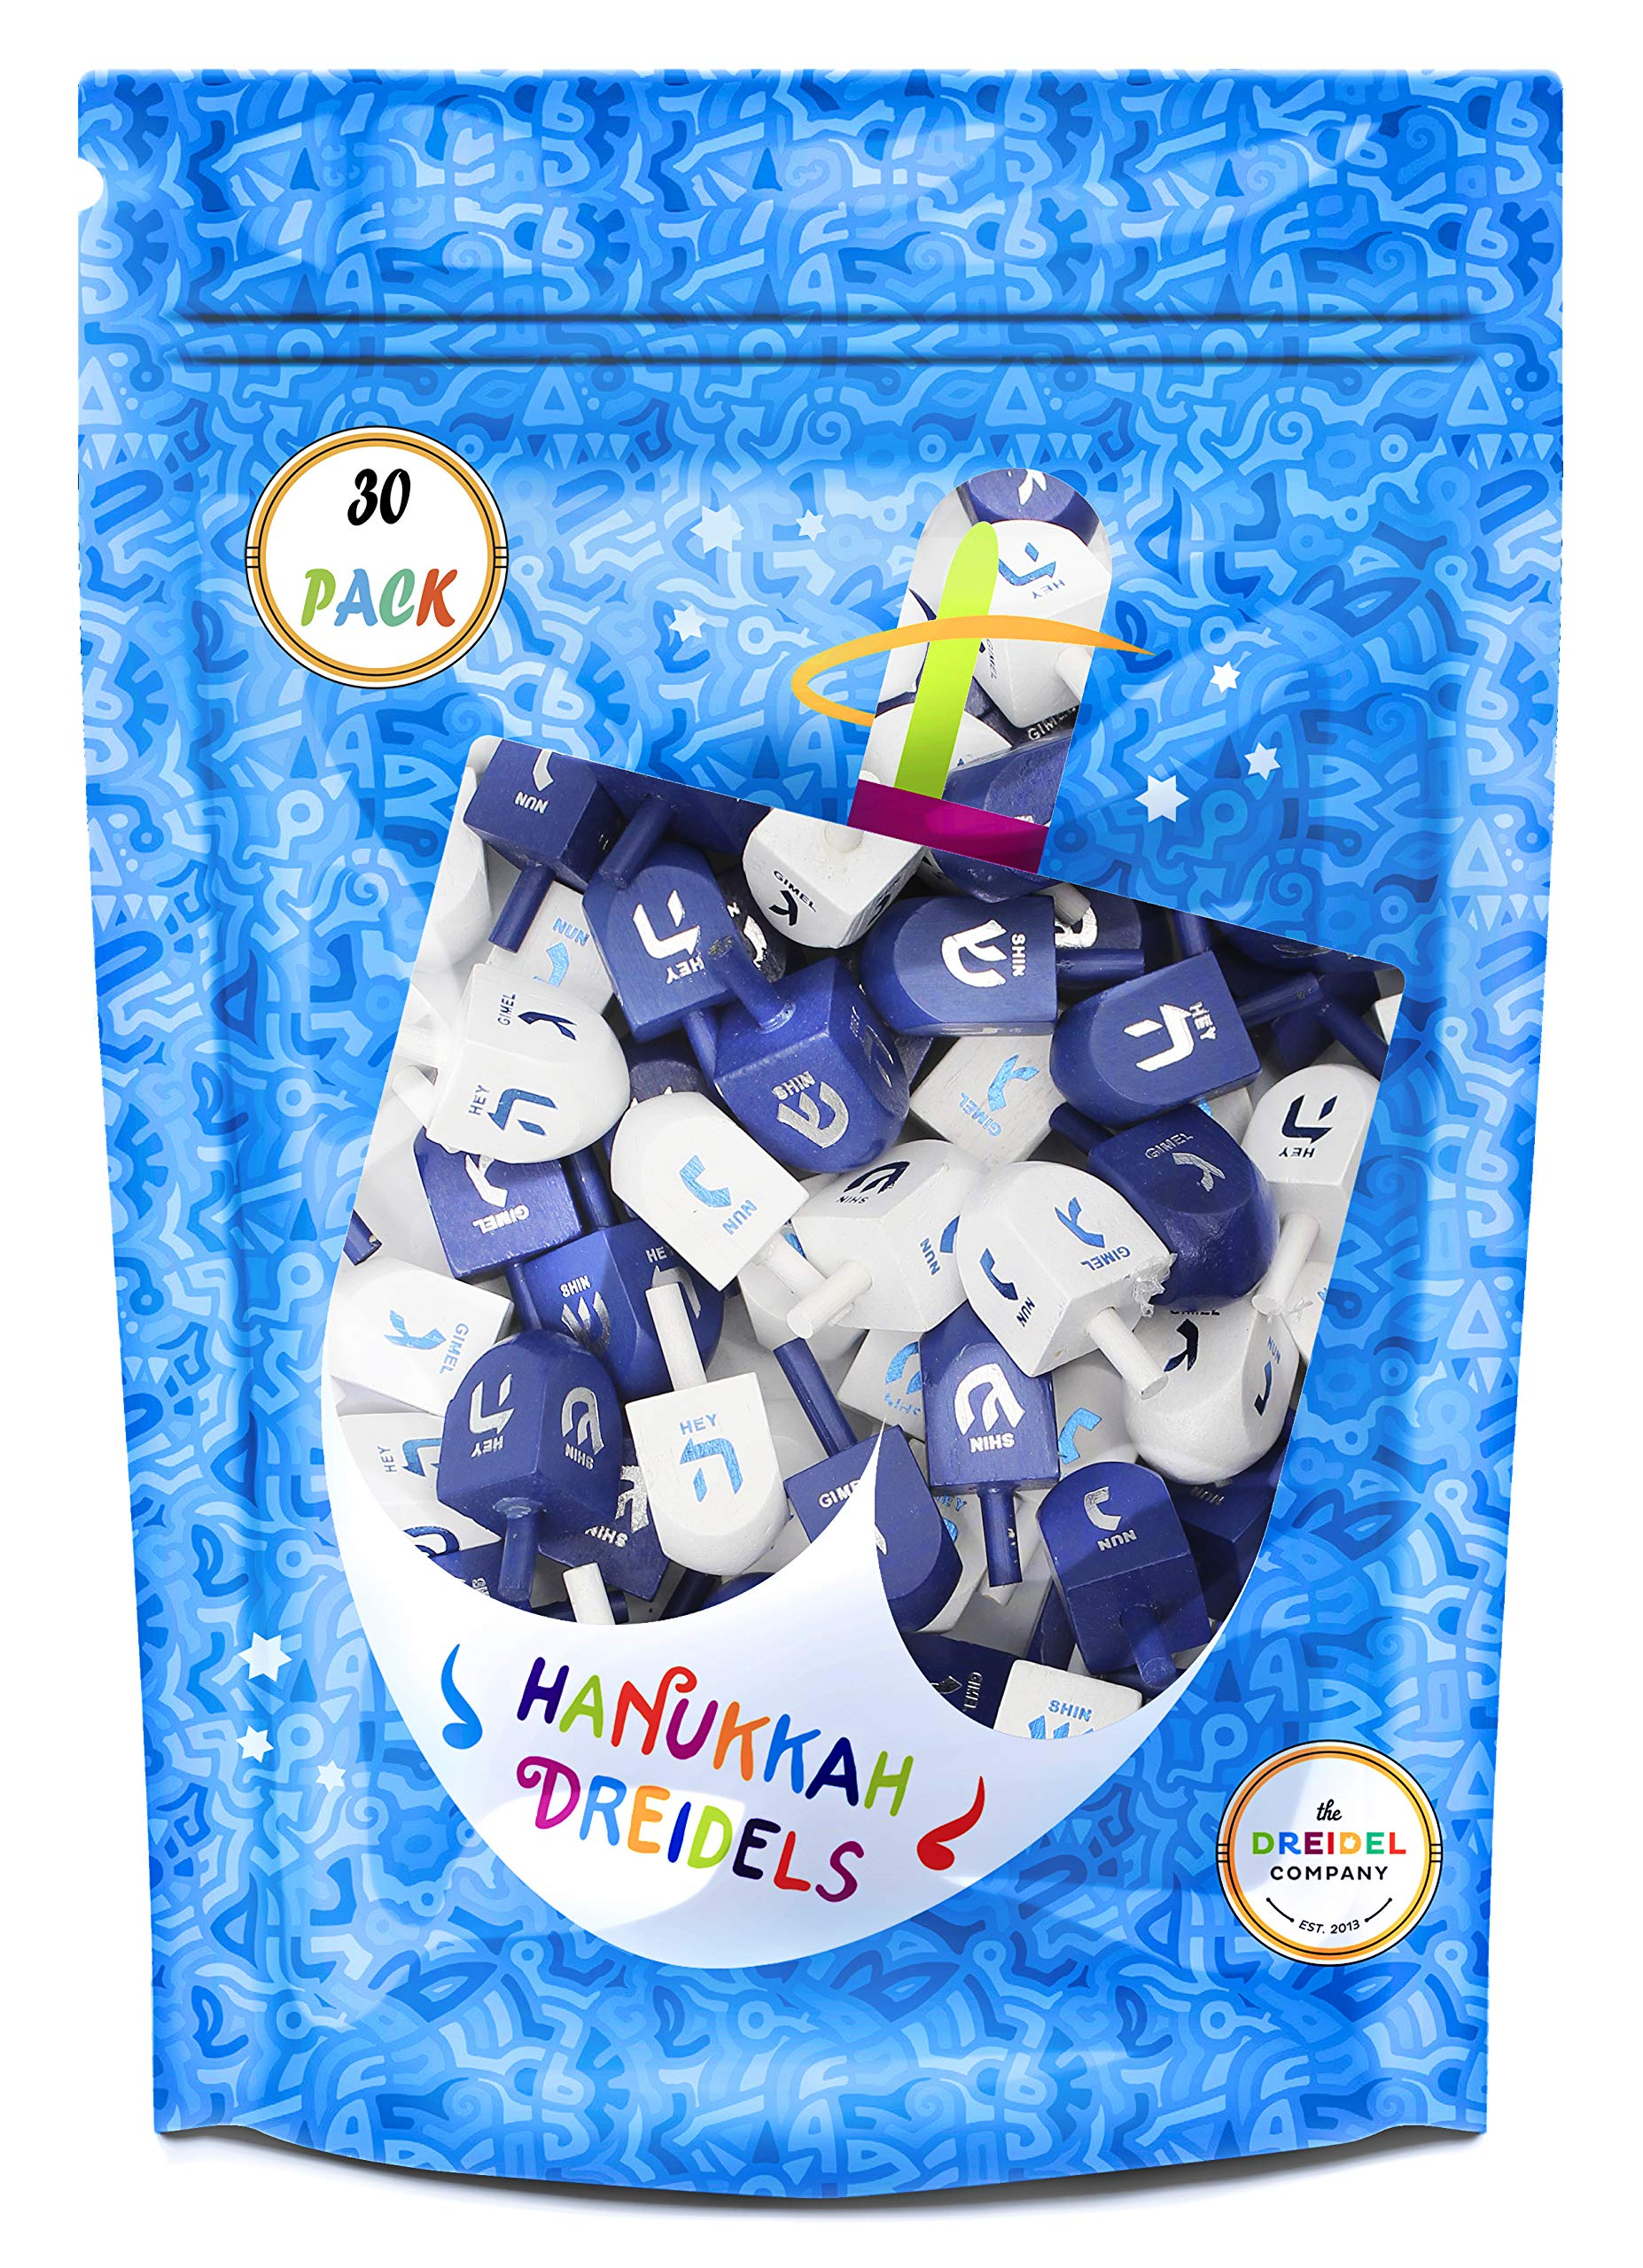 Wood Dreidel 30 Solid Blue & White Wooden Hanukkah Dreidels Hand Painted With English Transliteration - Includes x3 Game Instruction Cards! (30-Pack) by The Dreidel Company (Image #2)